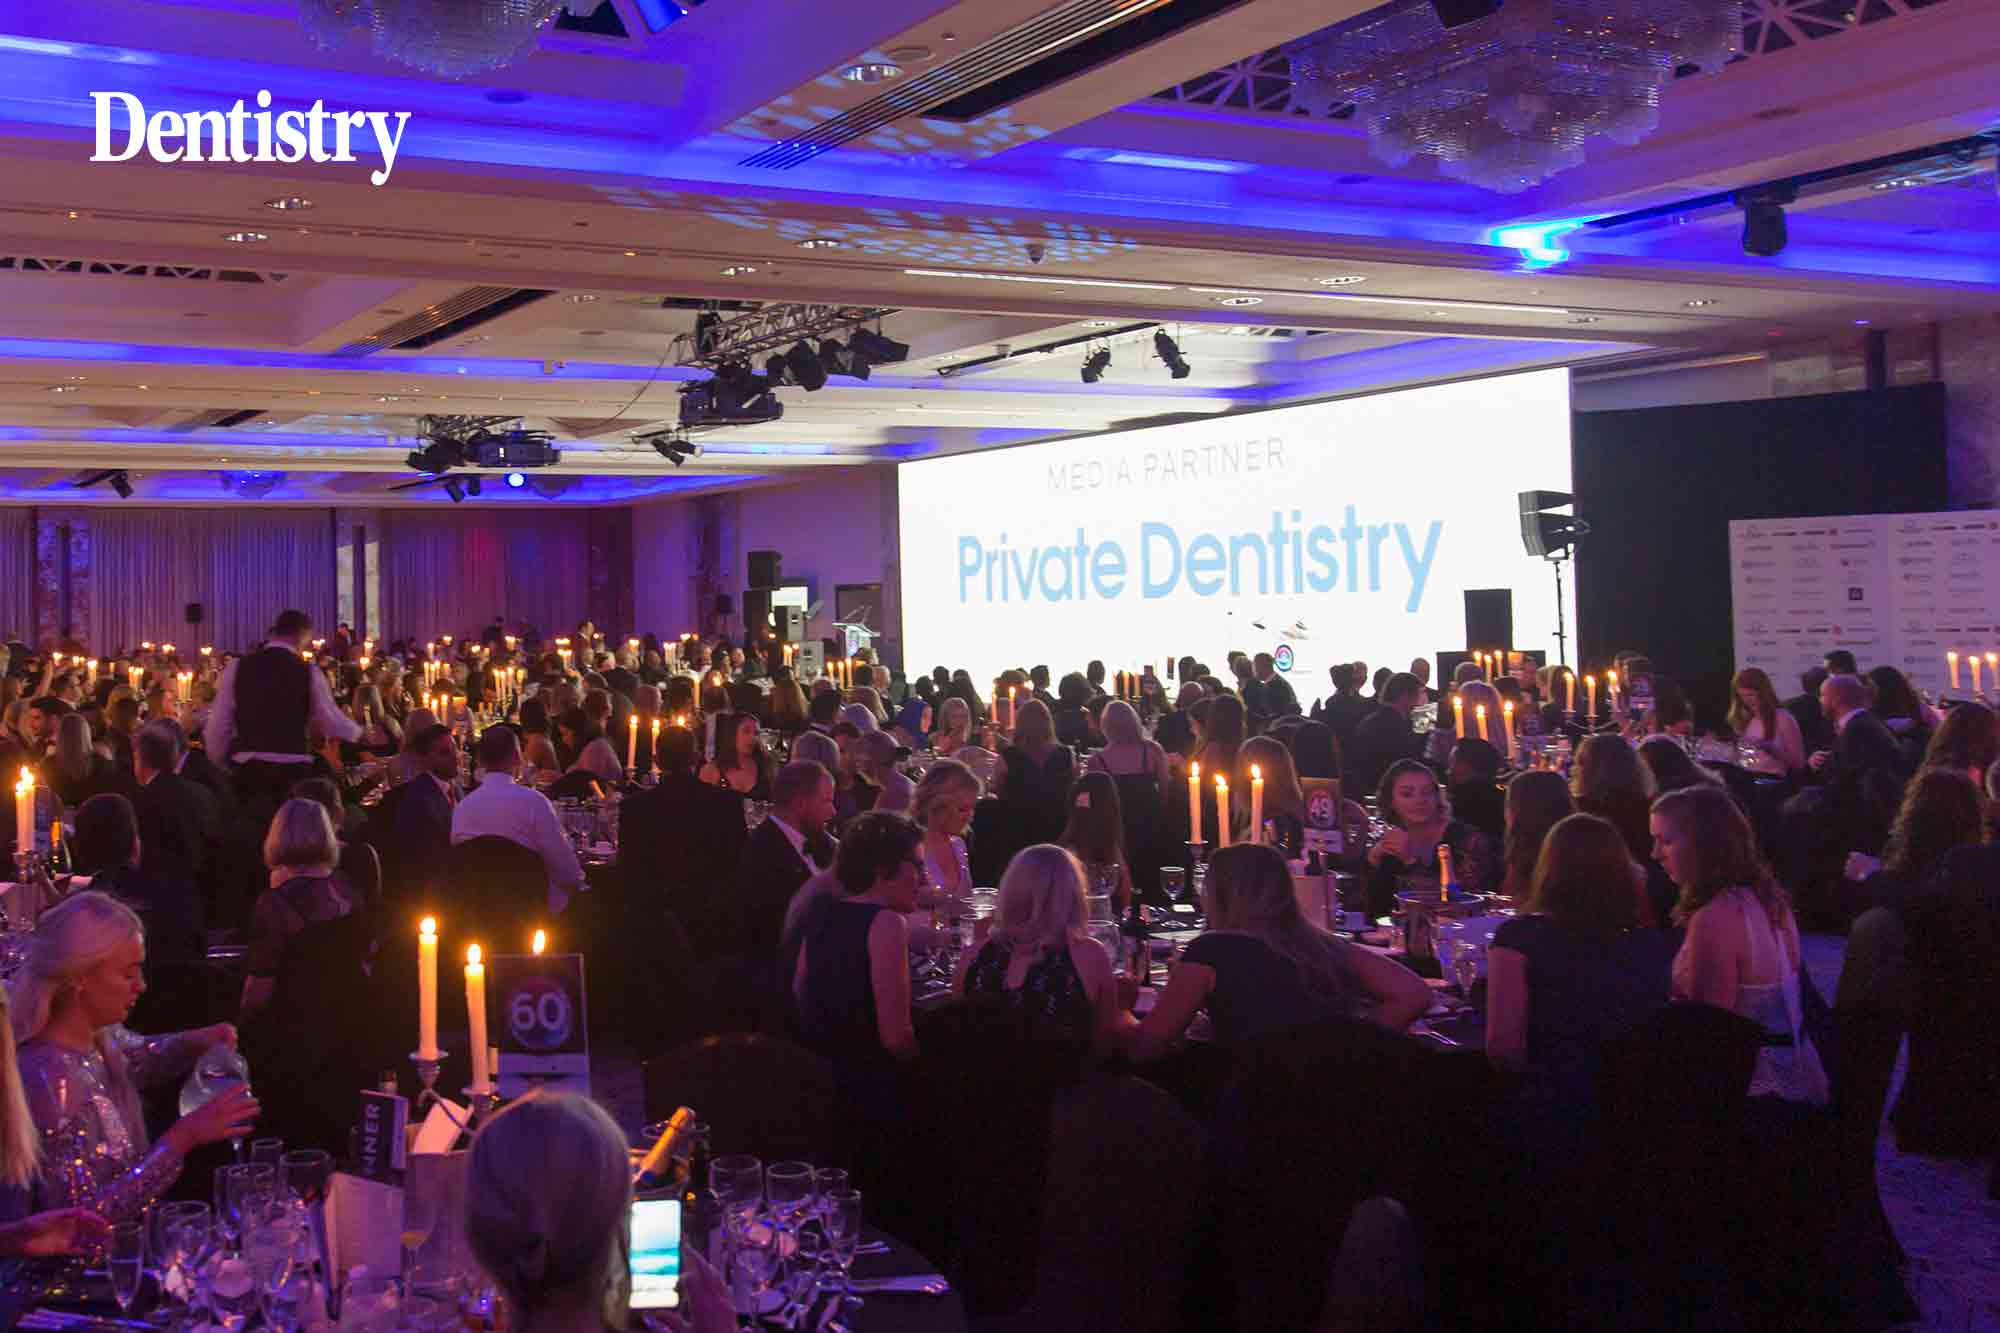 Private Dentistry Awards – last chance to apply for free